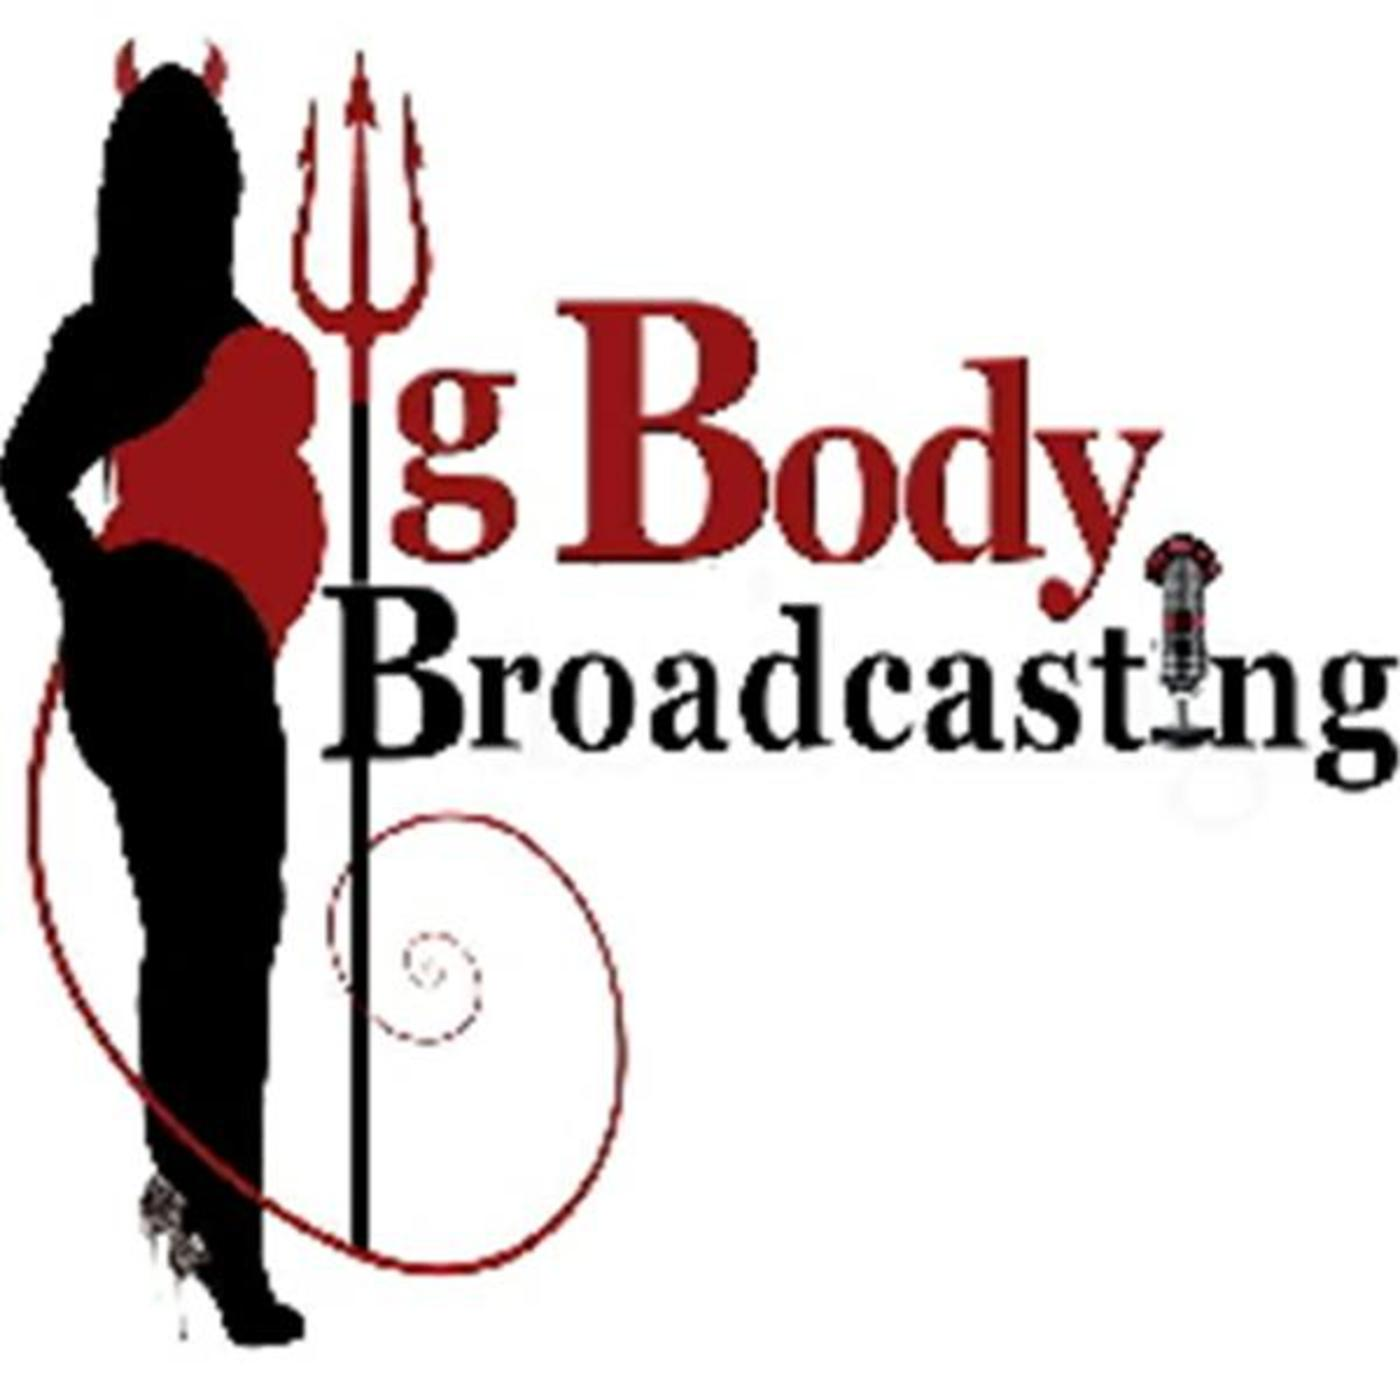 Big Body Broadcasting